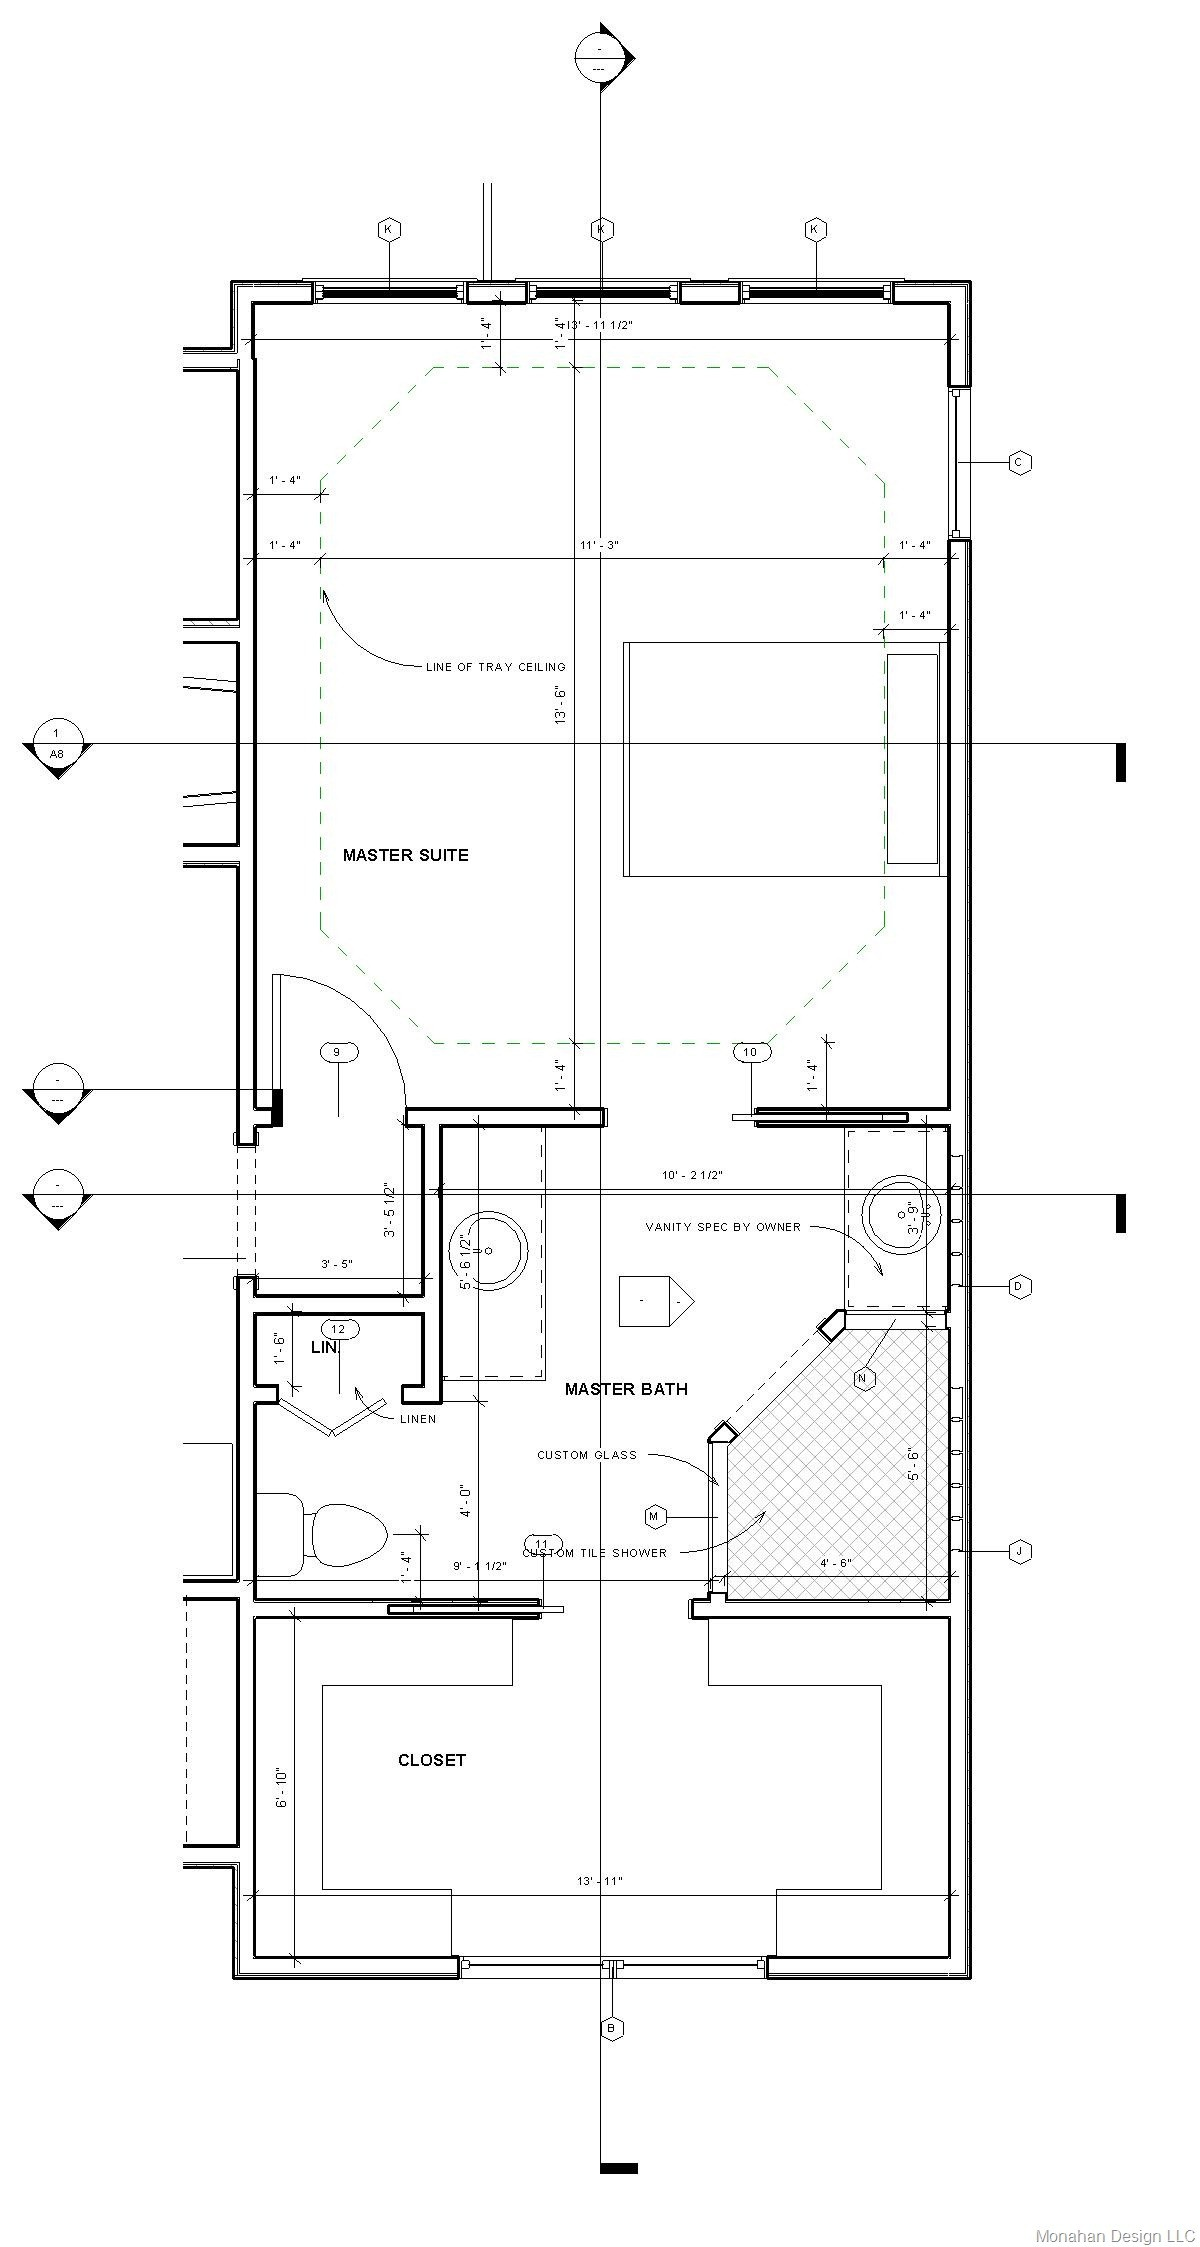 Fascinating Master Bedroom Addition Plans | Winsome Master Suite Addition Plans